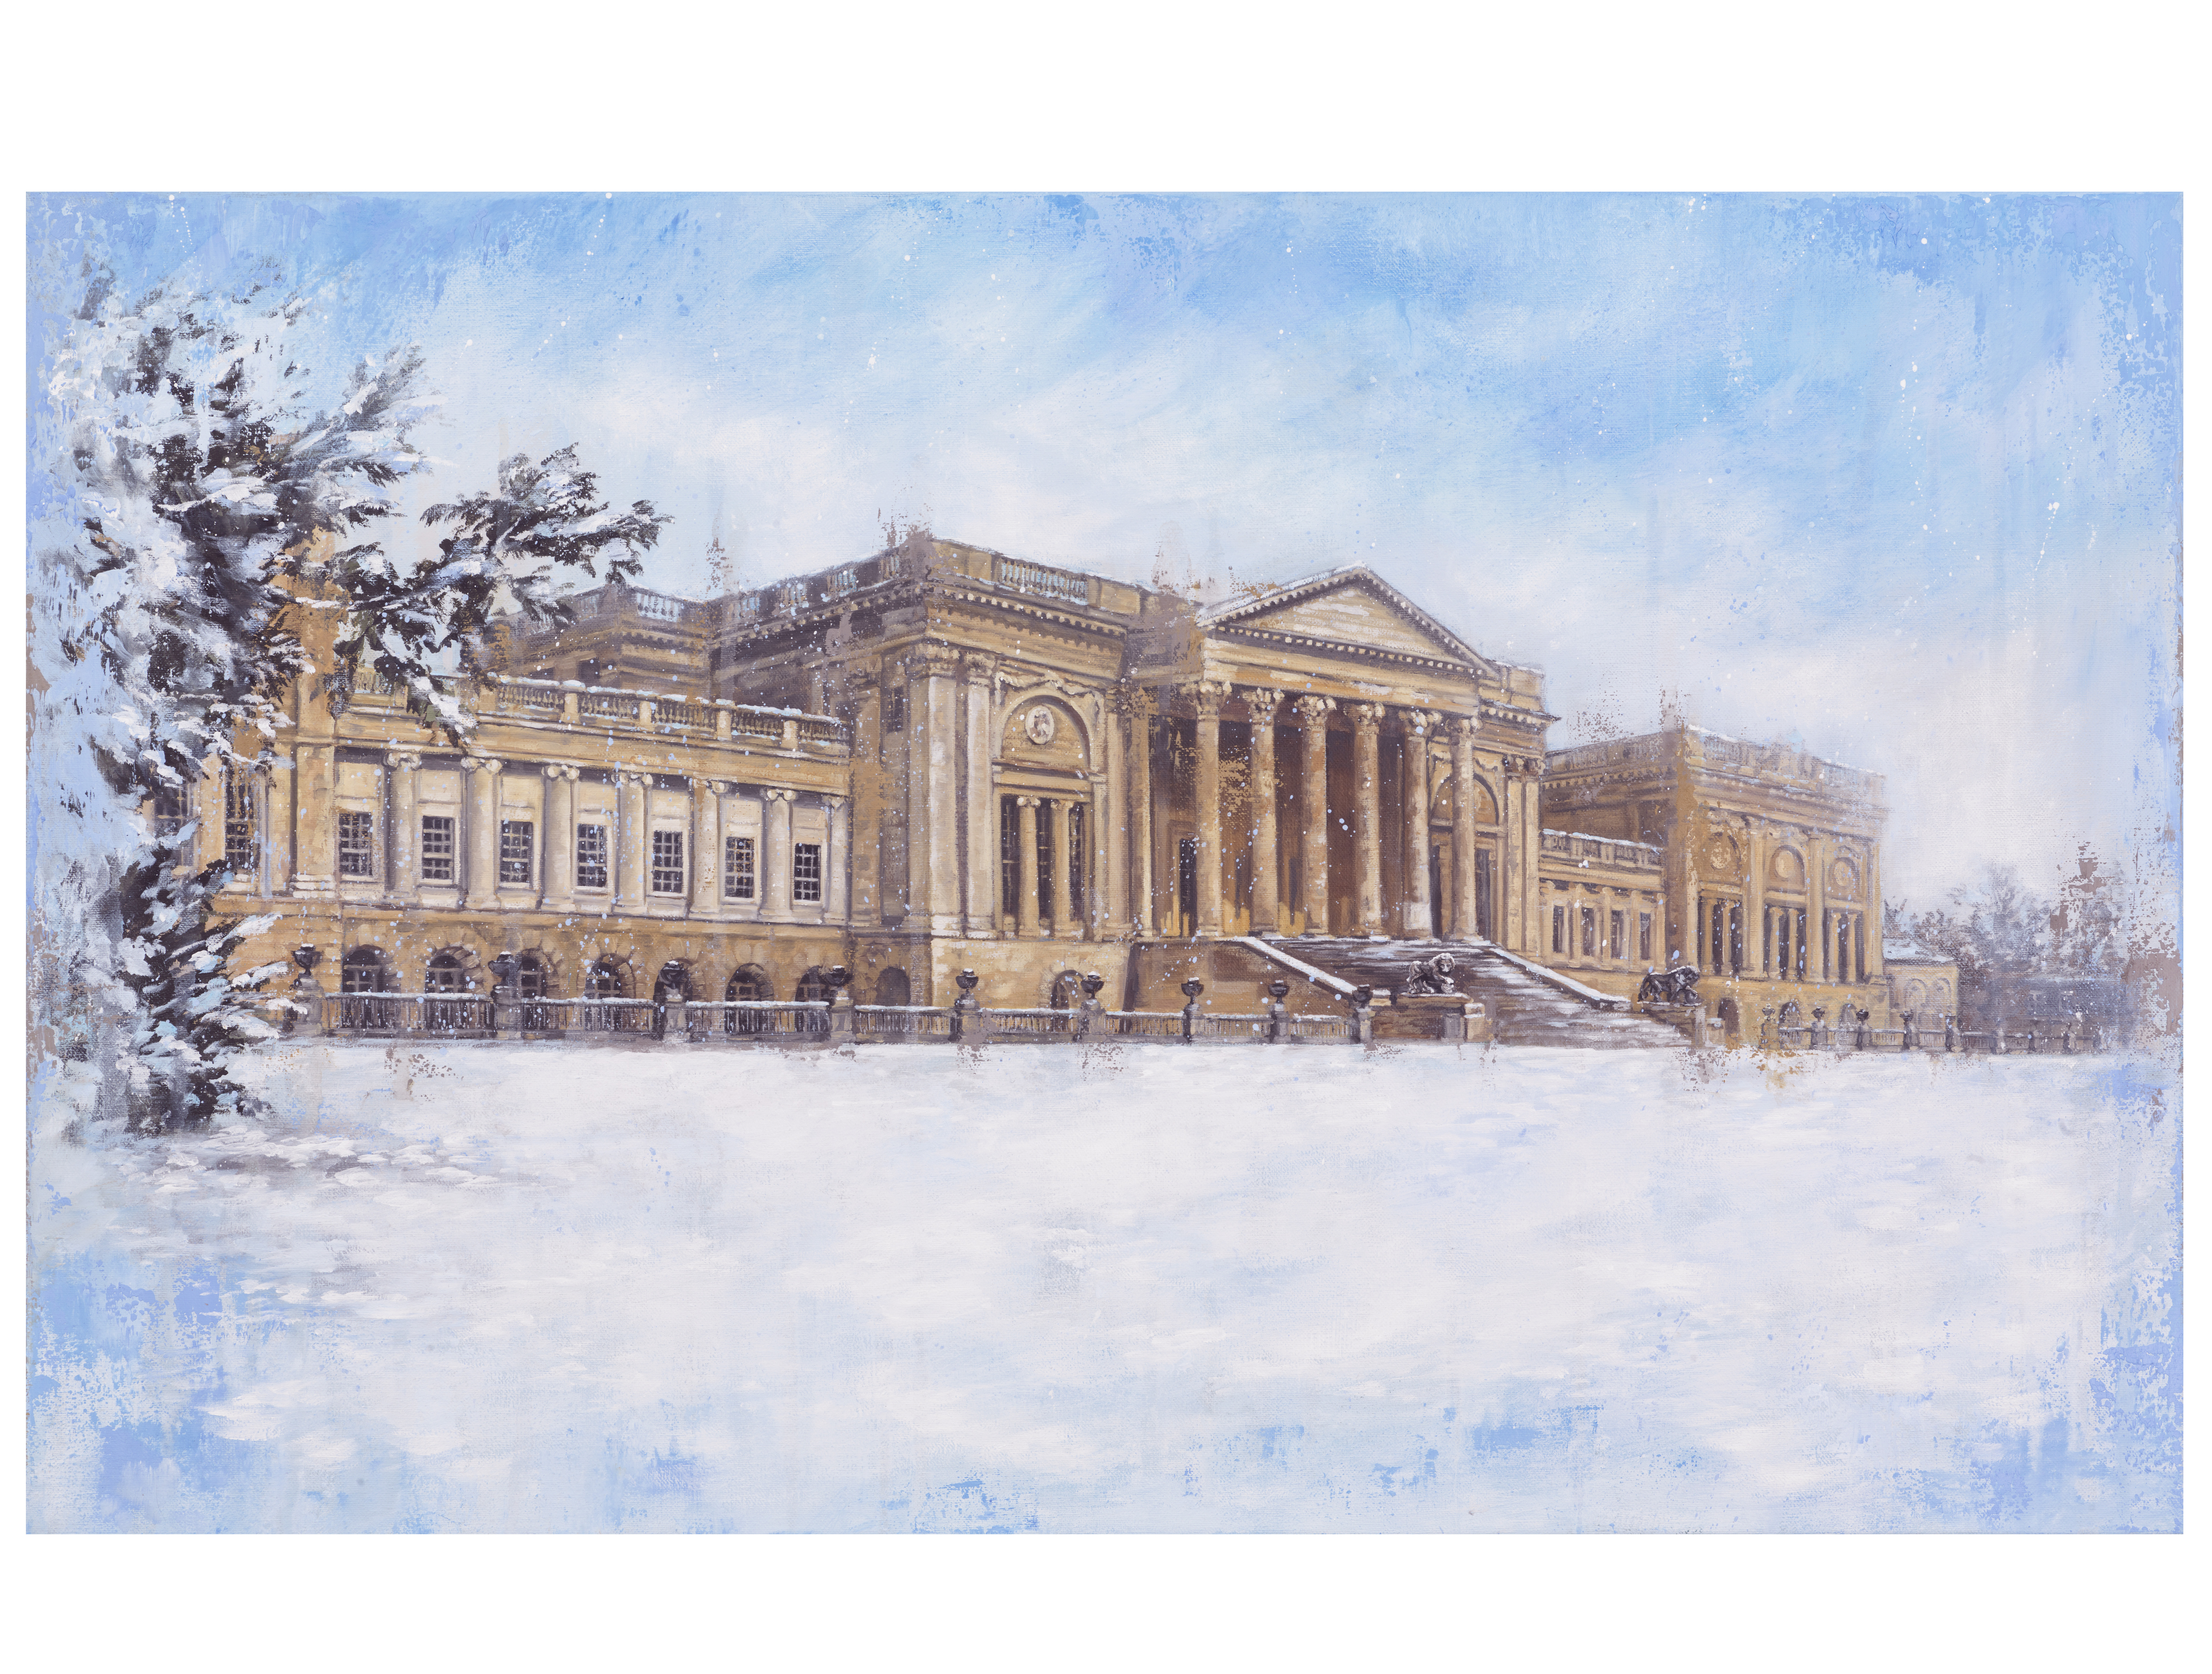 Stowe in the Snow